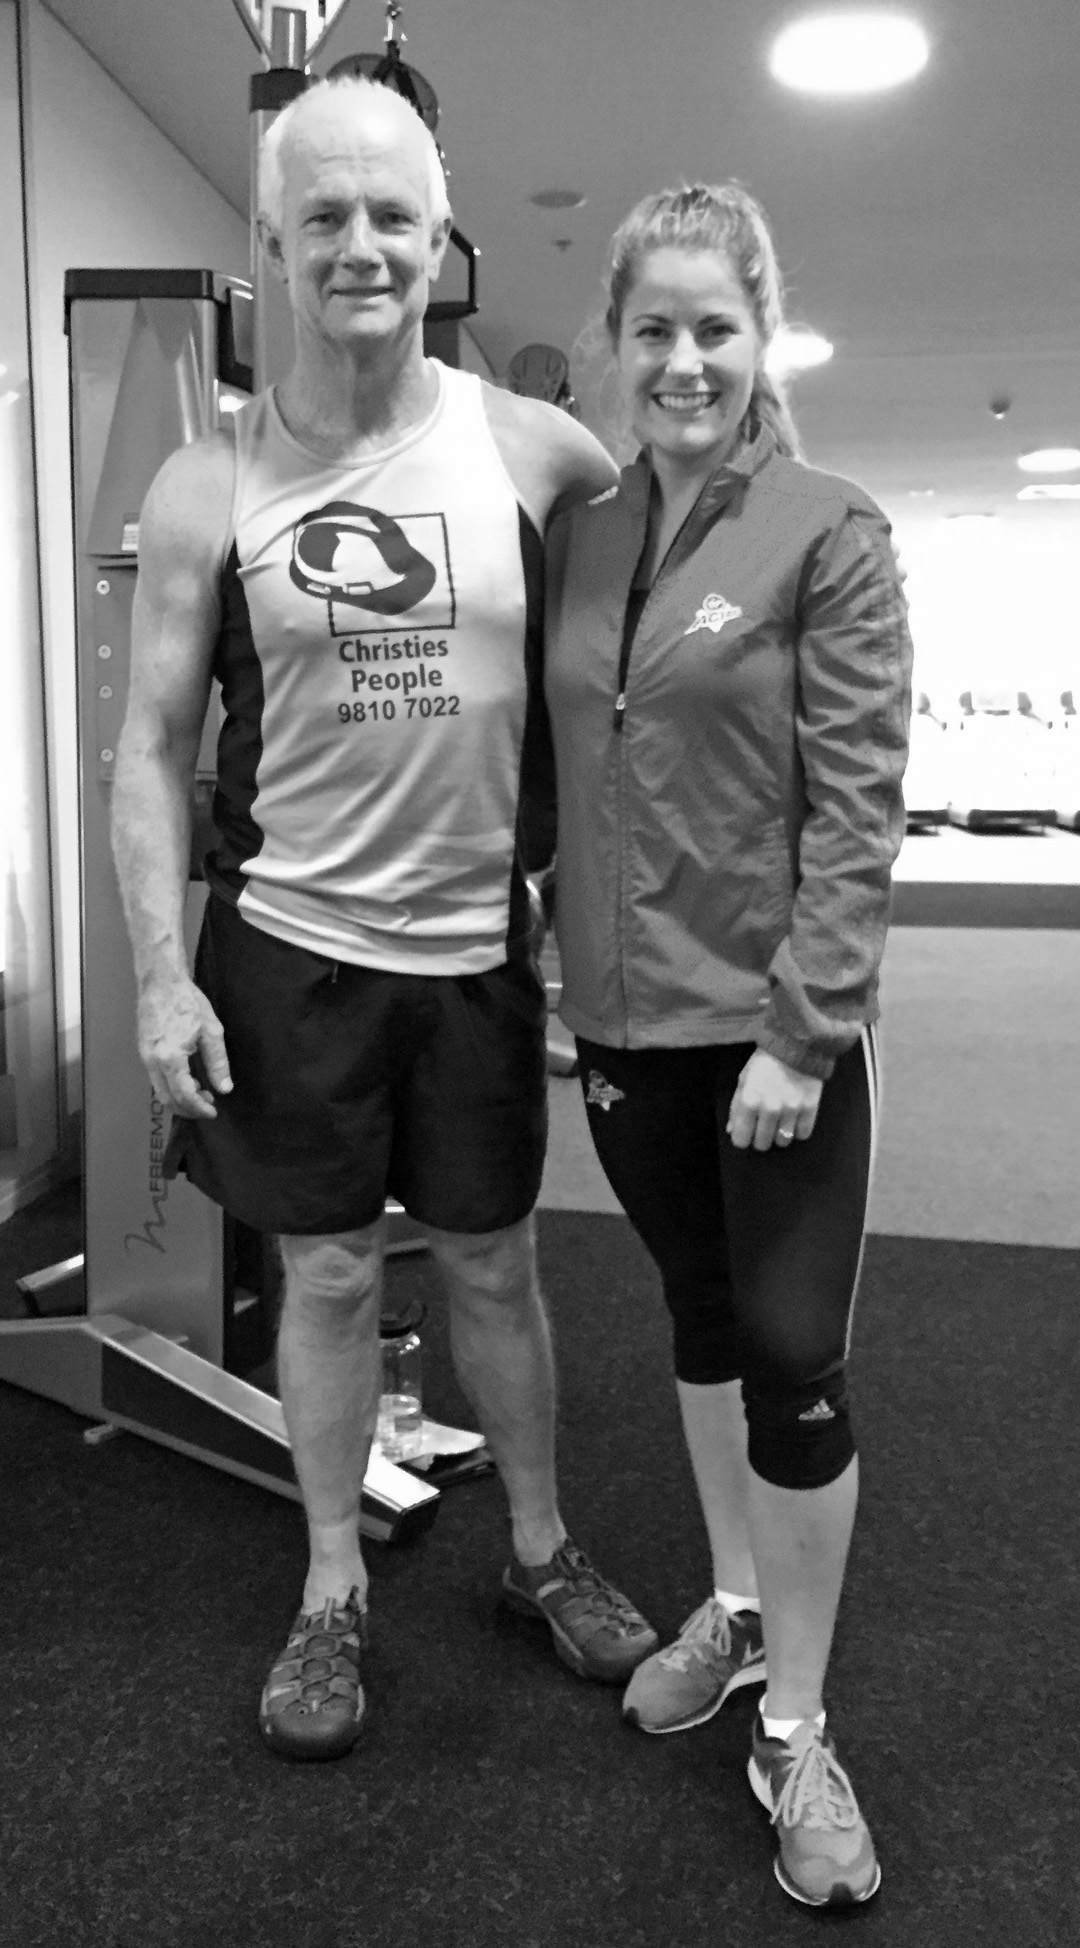 The relationship the relationship between the postsurgical patient and their advisors such as physiotherapists and personal trainers are crucial to successful recovery. They are also critical in avoiding injury during rehabilitation. I was magically fortunate in encountering Belinda vendor then at the virgin gym in Sydney. As of December 2015 she has been supervising my recovery for nine months. This photo was taken in the gym after our last session before Christmas in 2015